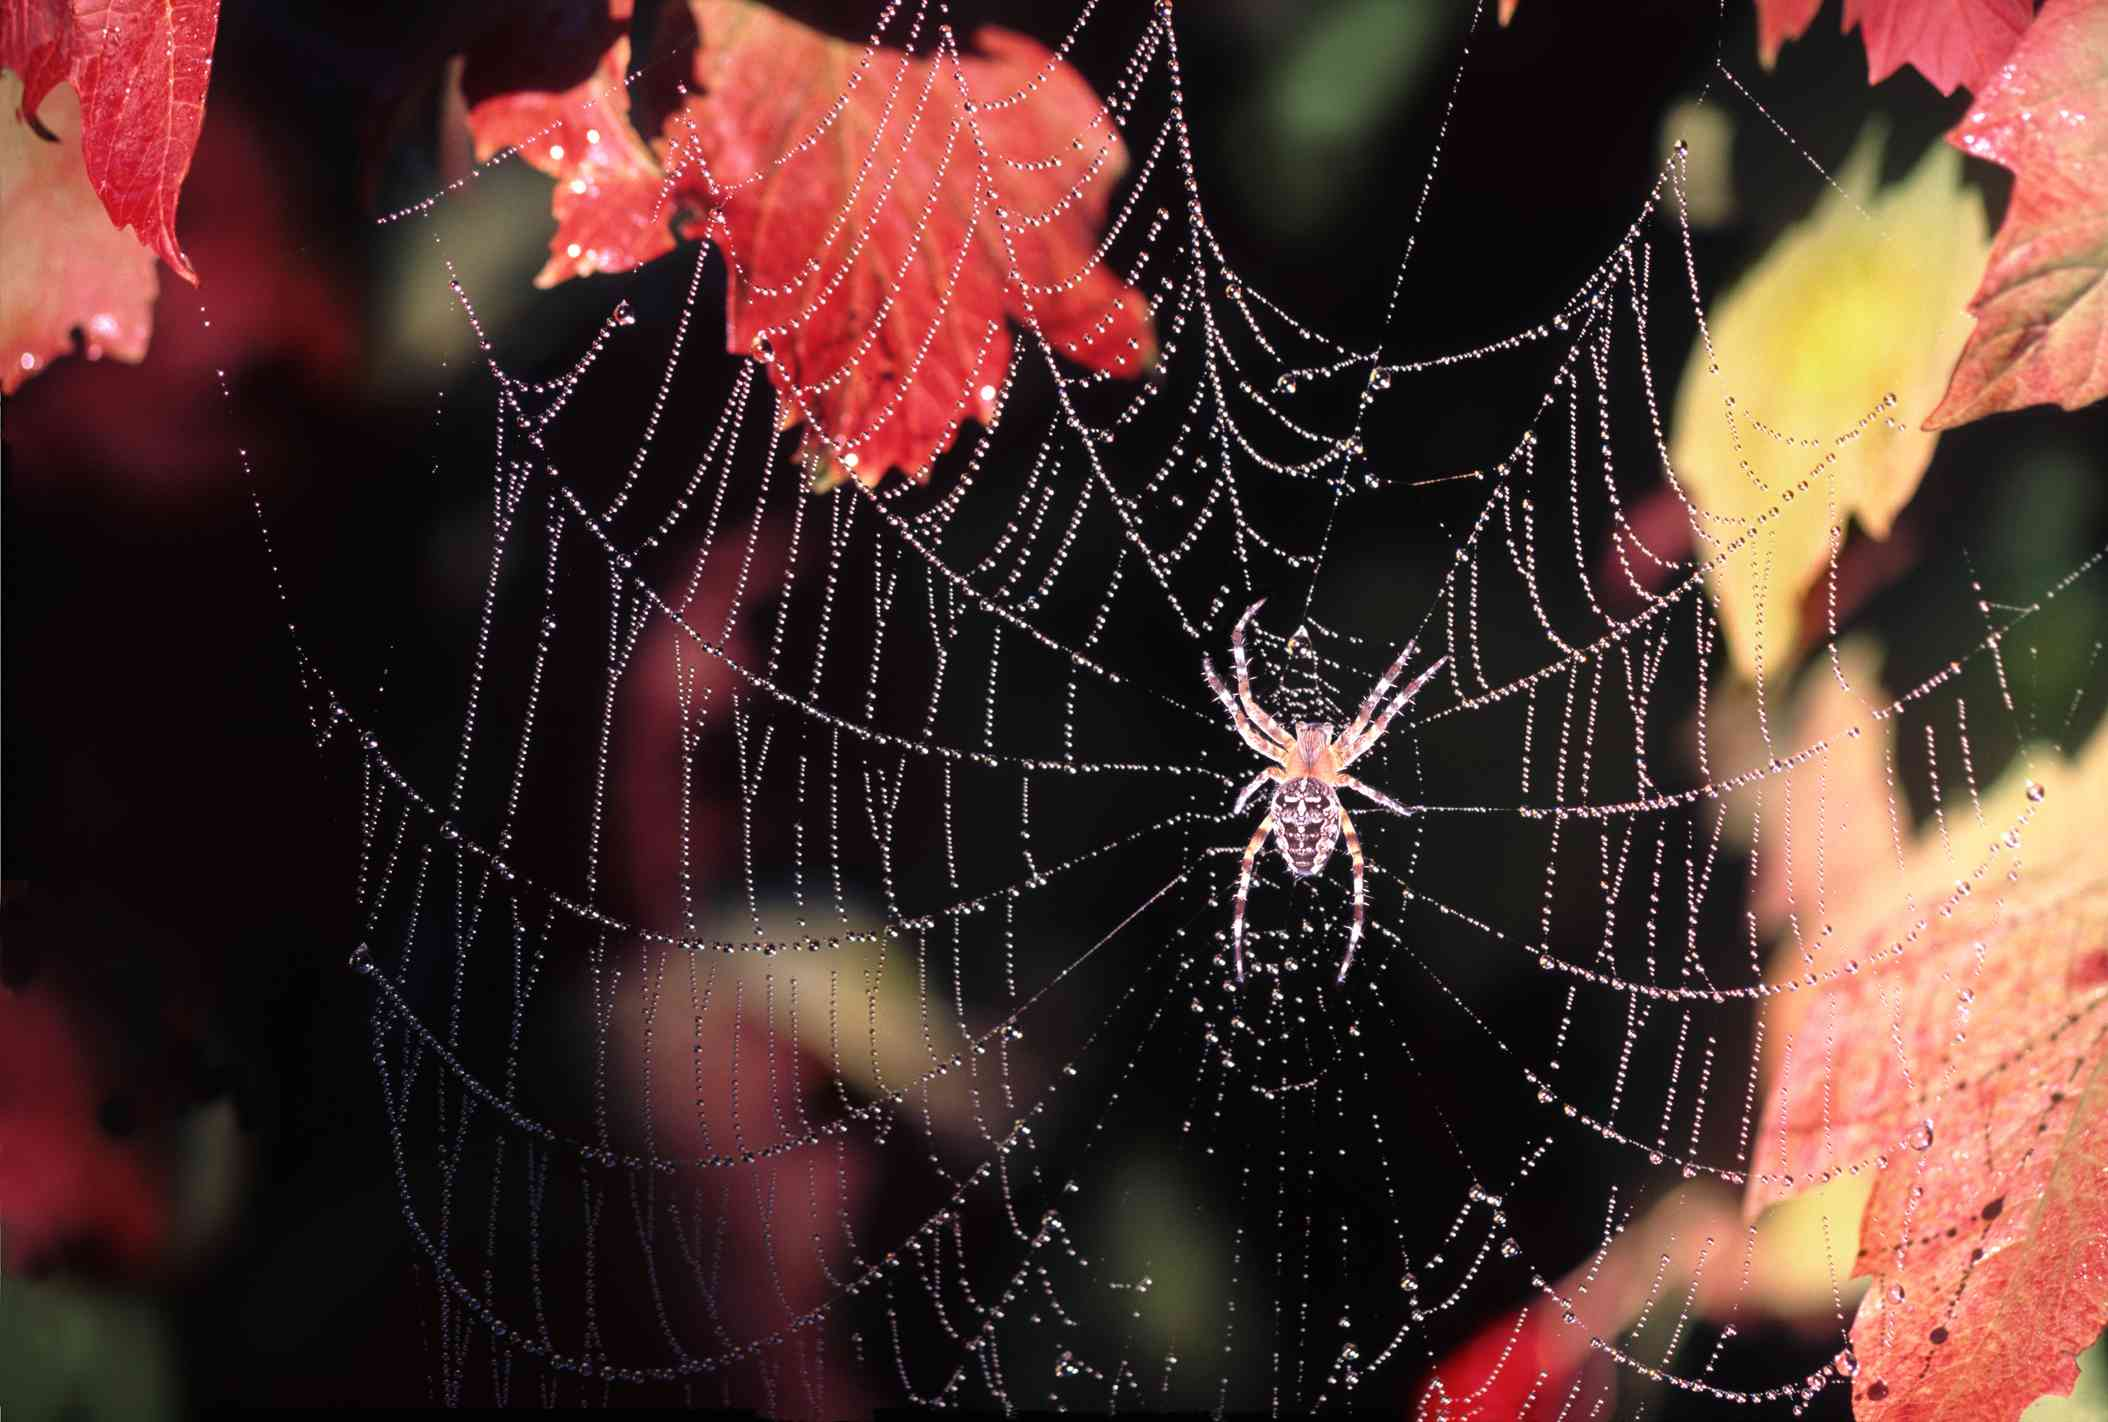 orb-weaver spider in a web surrounded by fall leaves